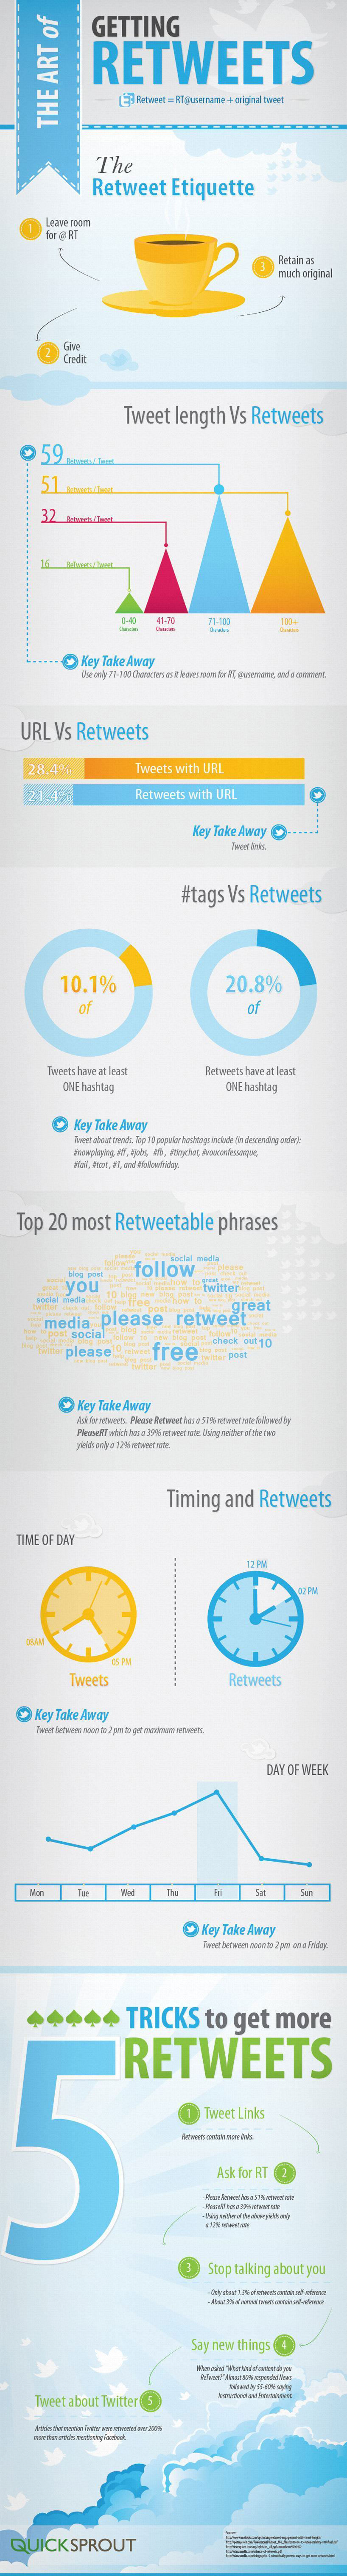 Want to know how to get more retweets? Here's the latest research on an an artful infographic to improve your Twitter reach!